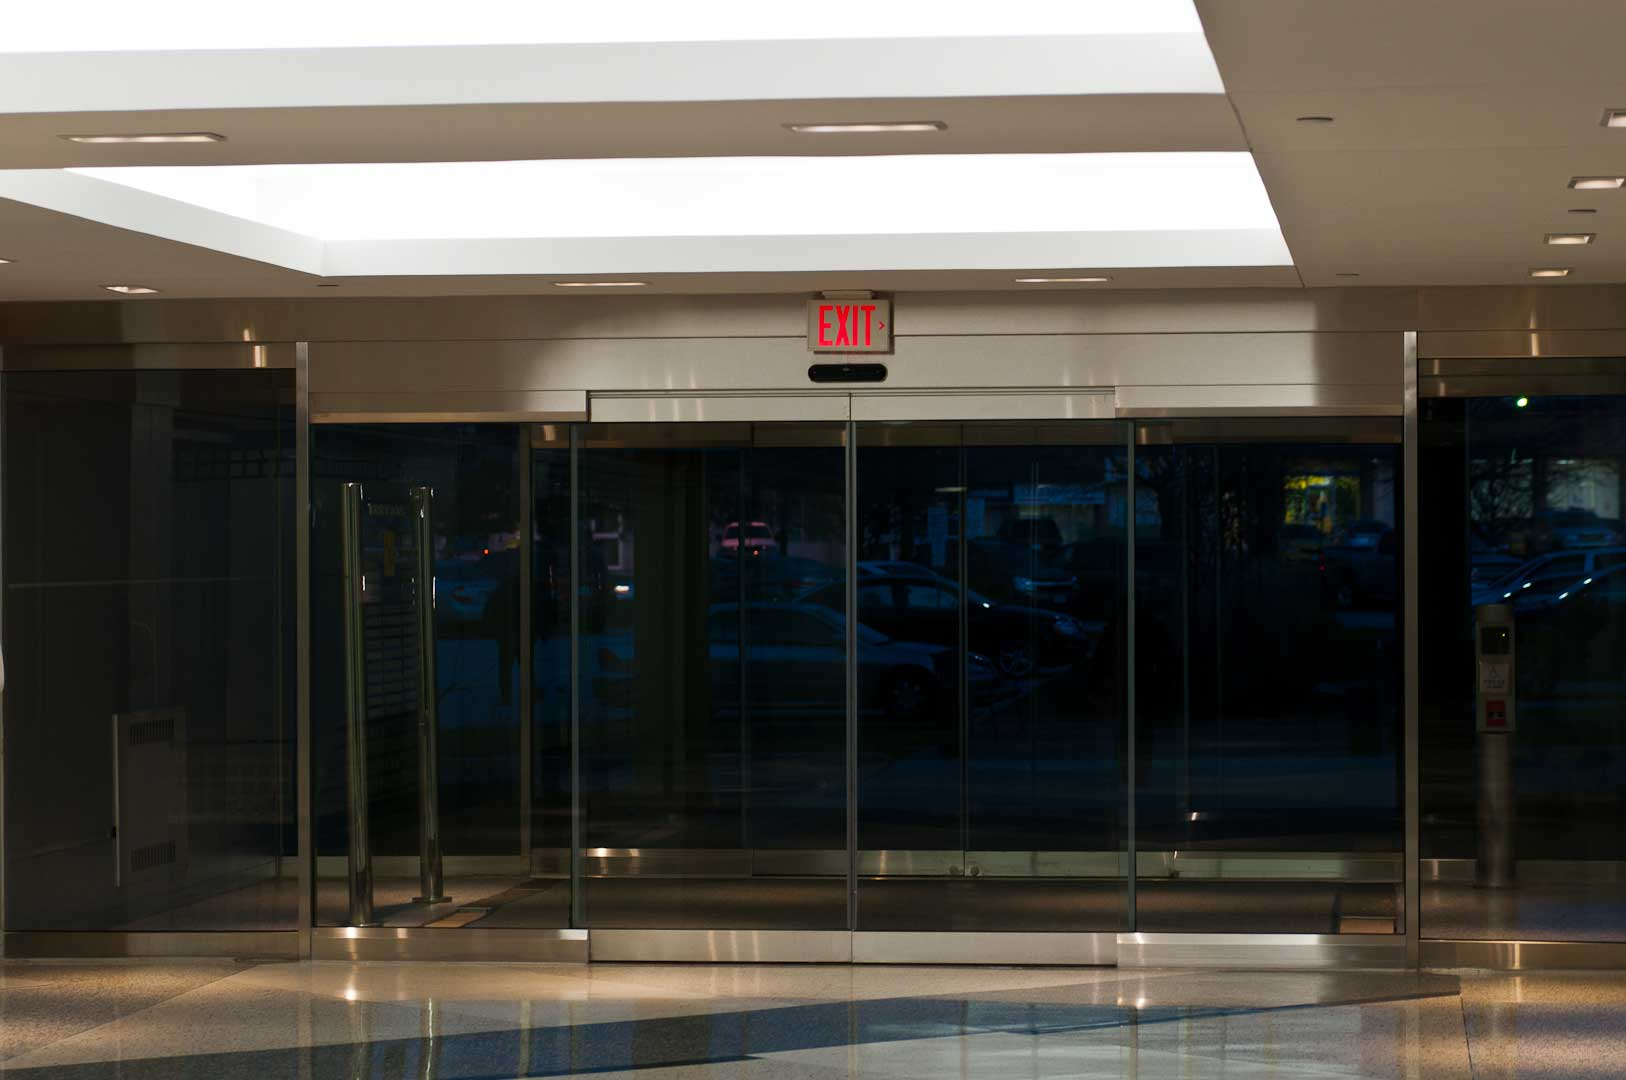 All glass building entrance installed by Explore1.ca in Toronto that features a Tormax Sliding door system